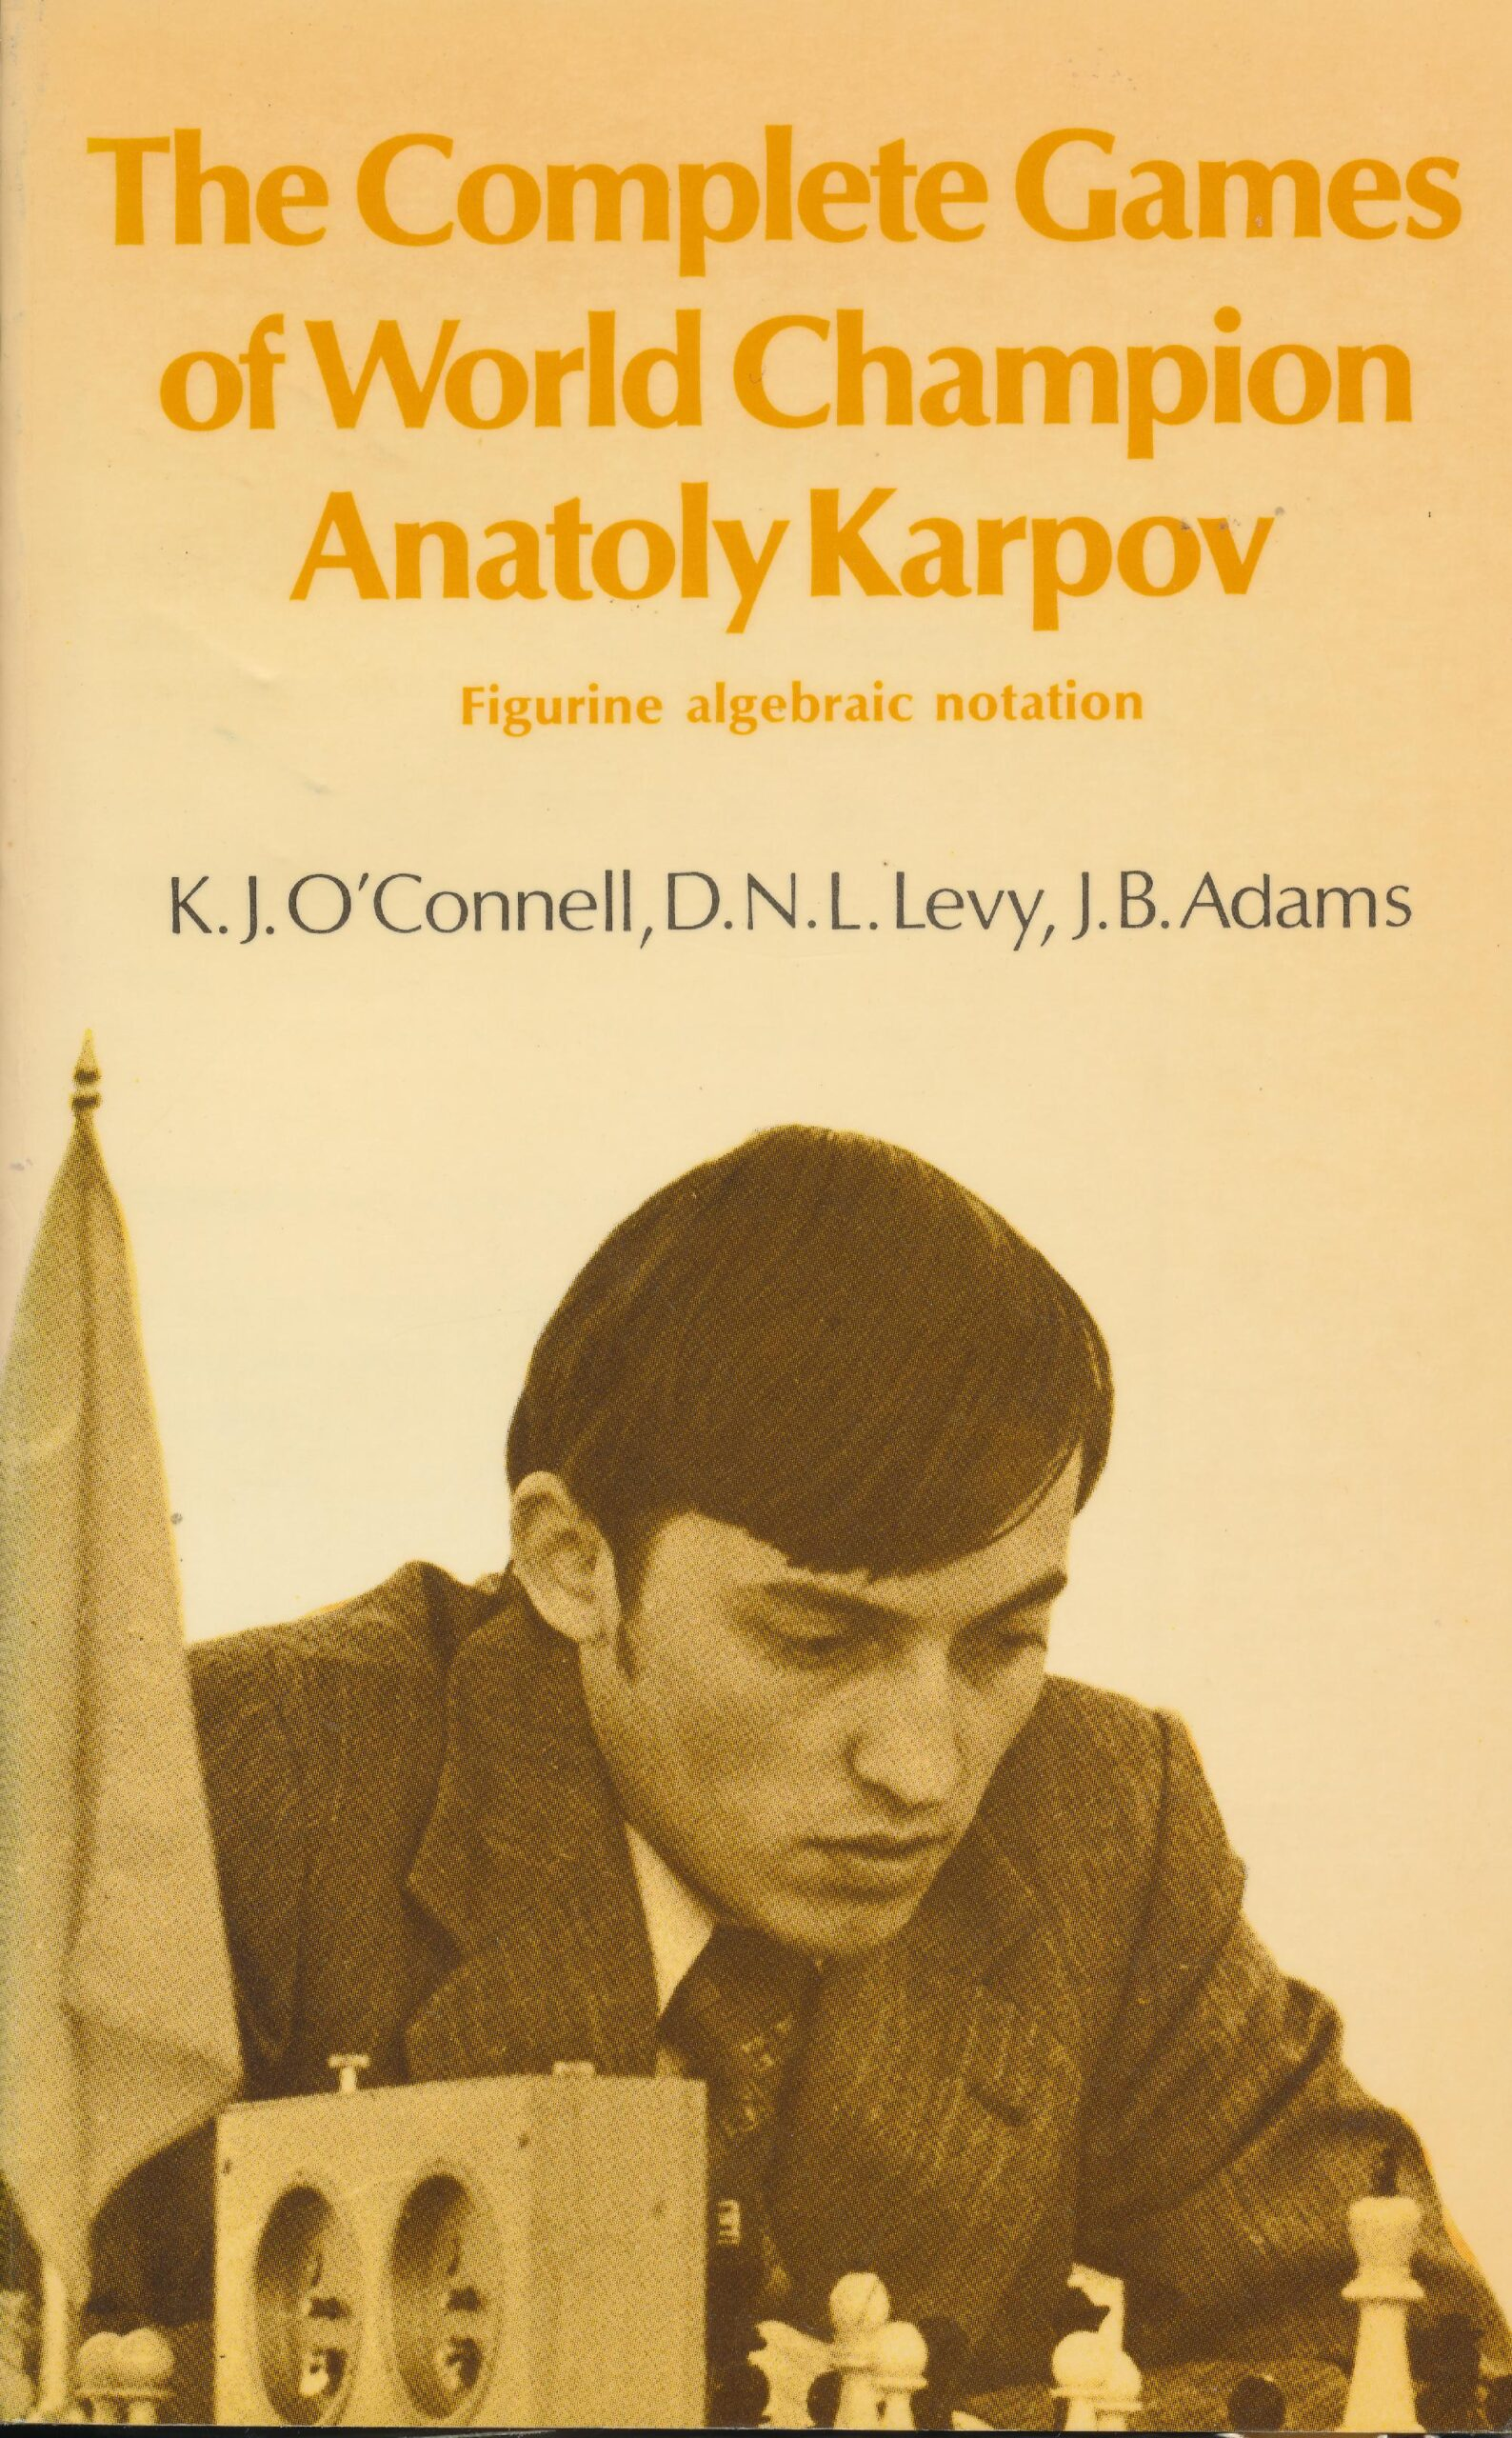 The Complete Games of World Champion Anatoly Karpov